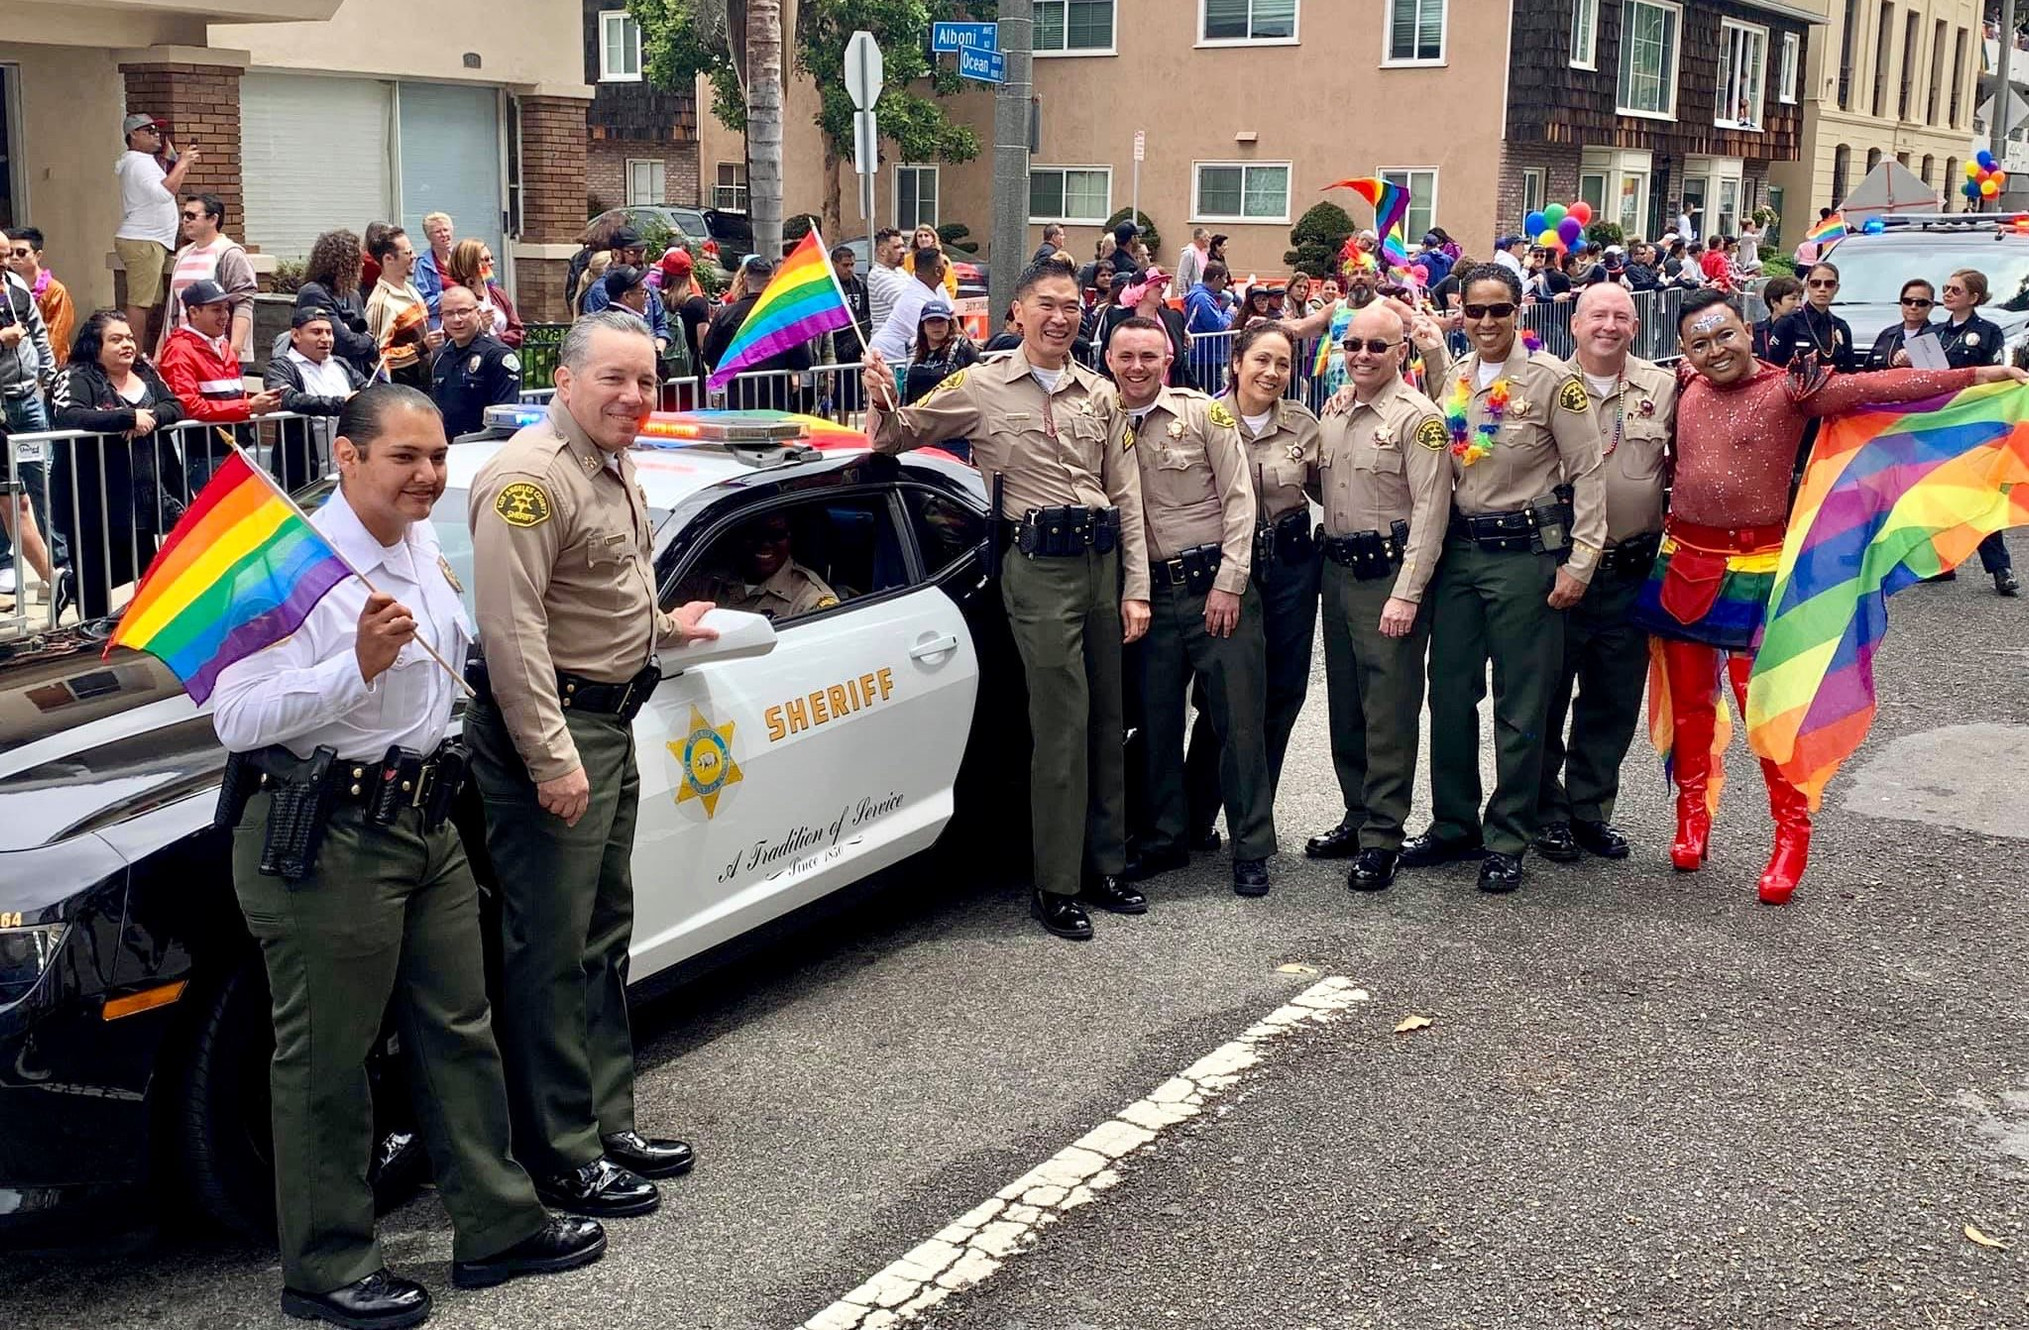 Los Angeles County Sheriff's Department is proudly